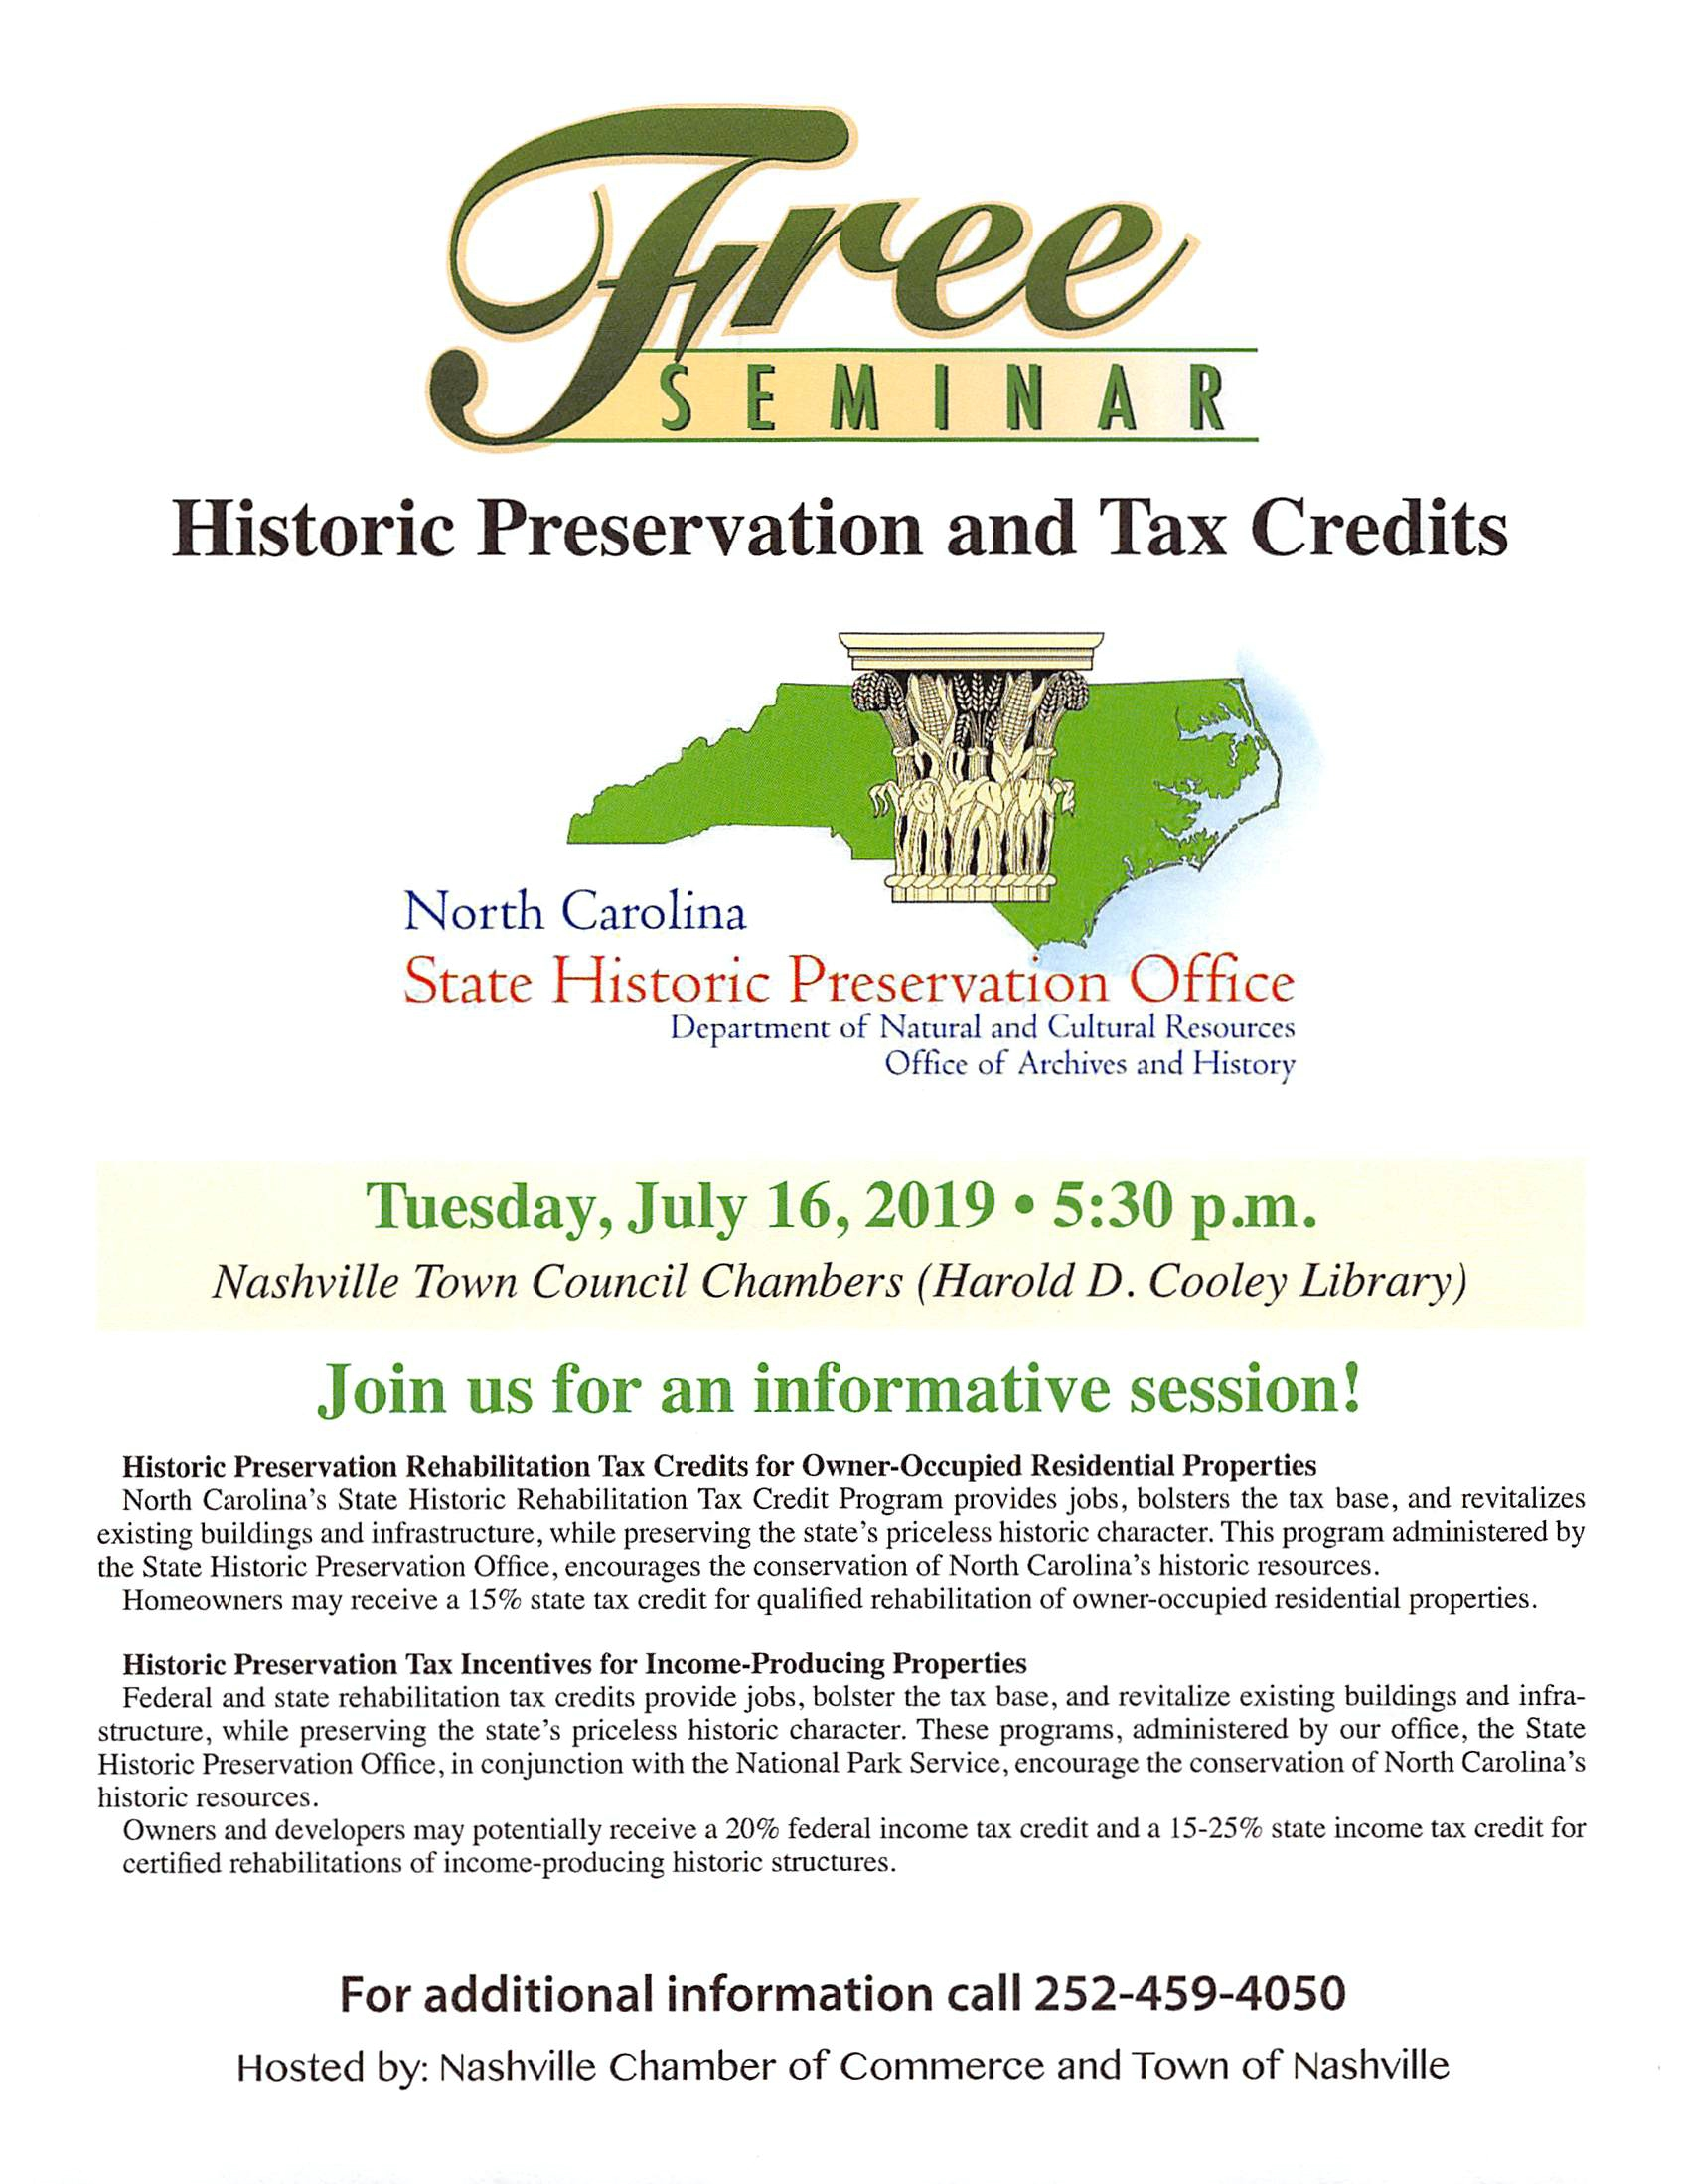 Historic Preservation and Tax Credits Program